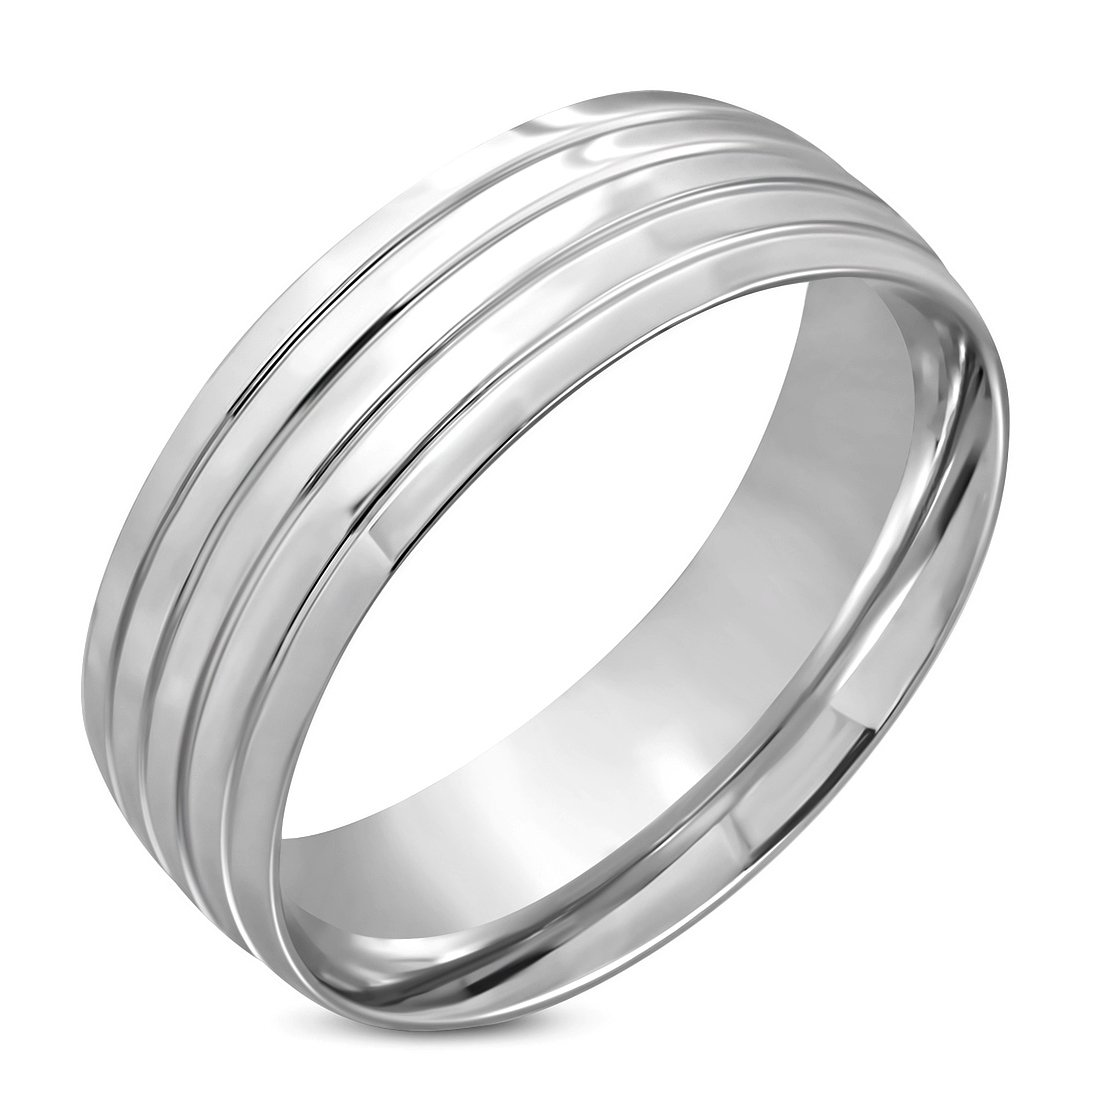 Stainless Steel Grooved Striped Comfort Fit Half-Round Wedding Band Ring